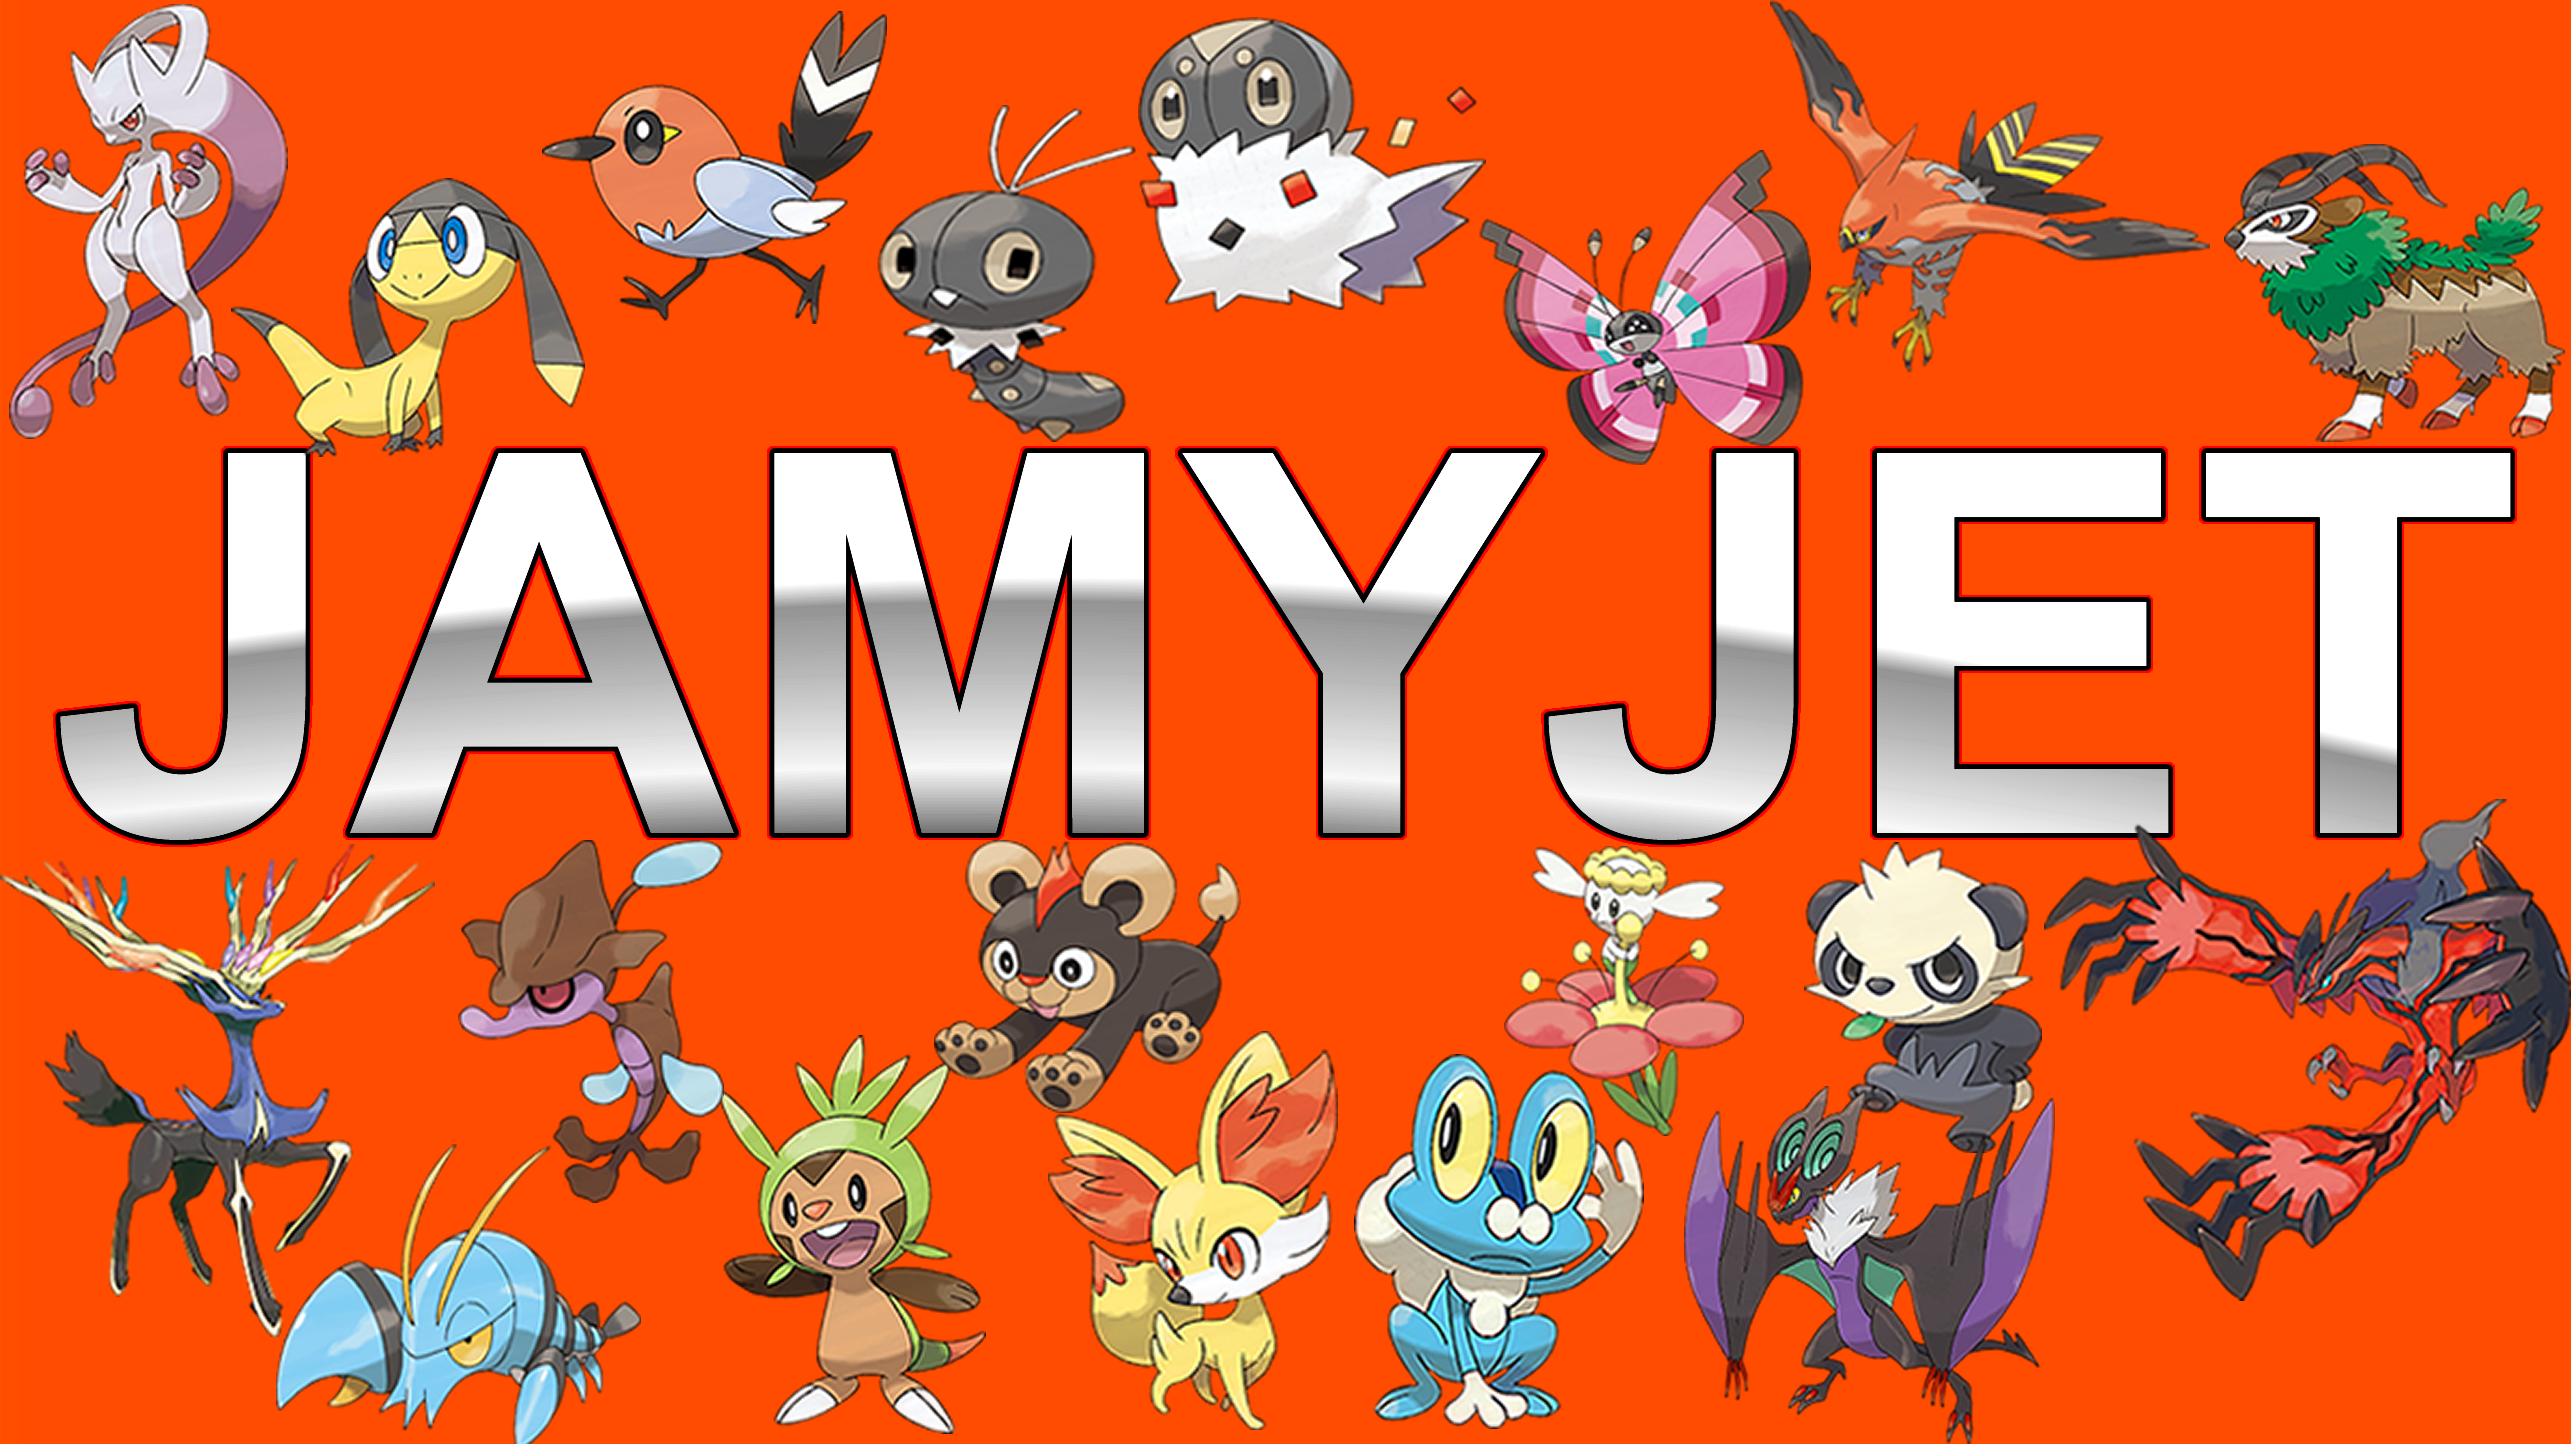 Pokemon X And Y Wallpaper V2 Jamyjet By Jammyjet On Deviantart